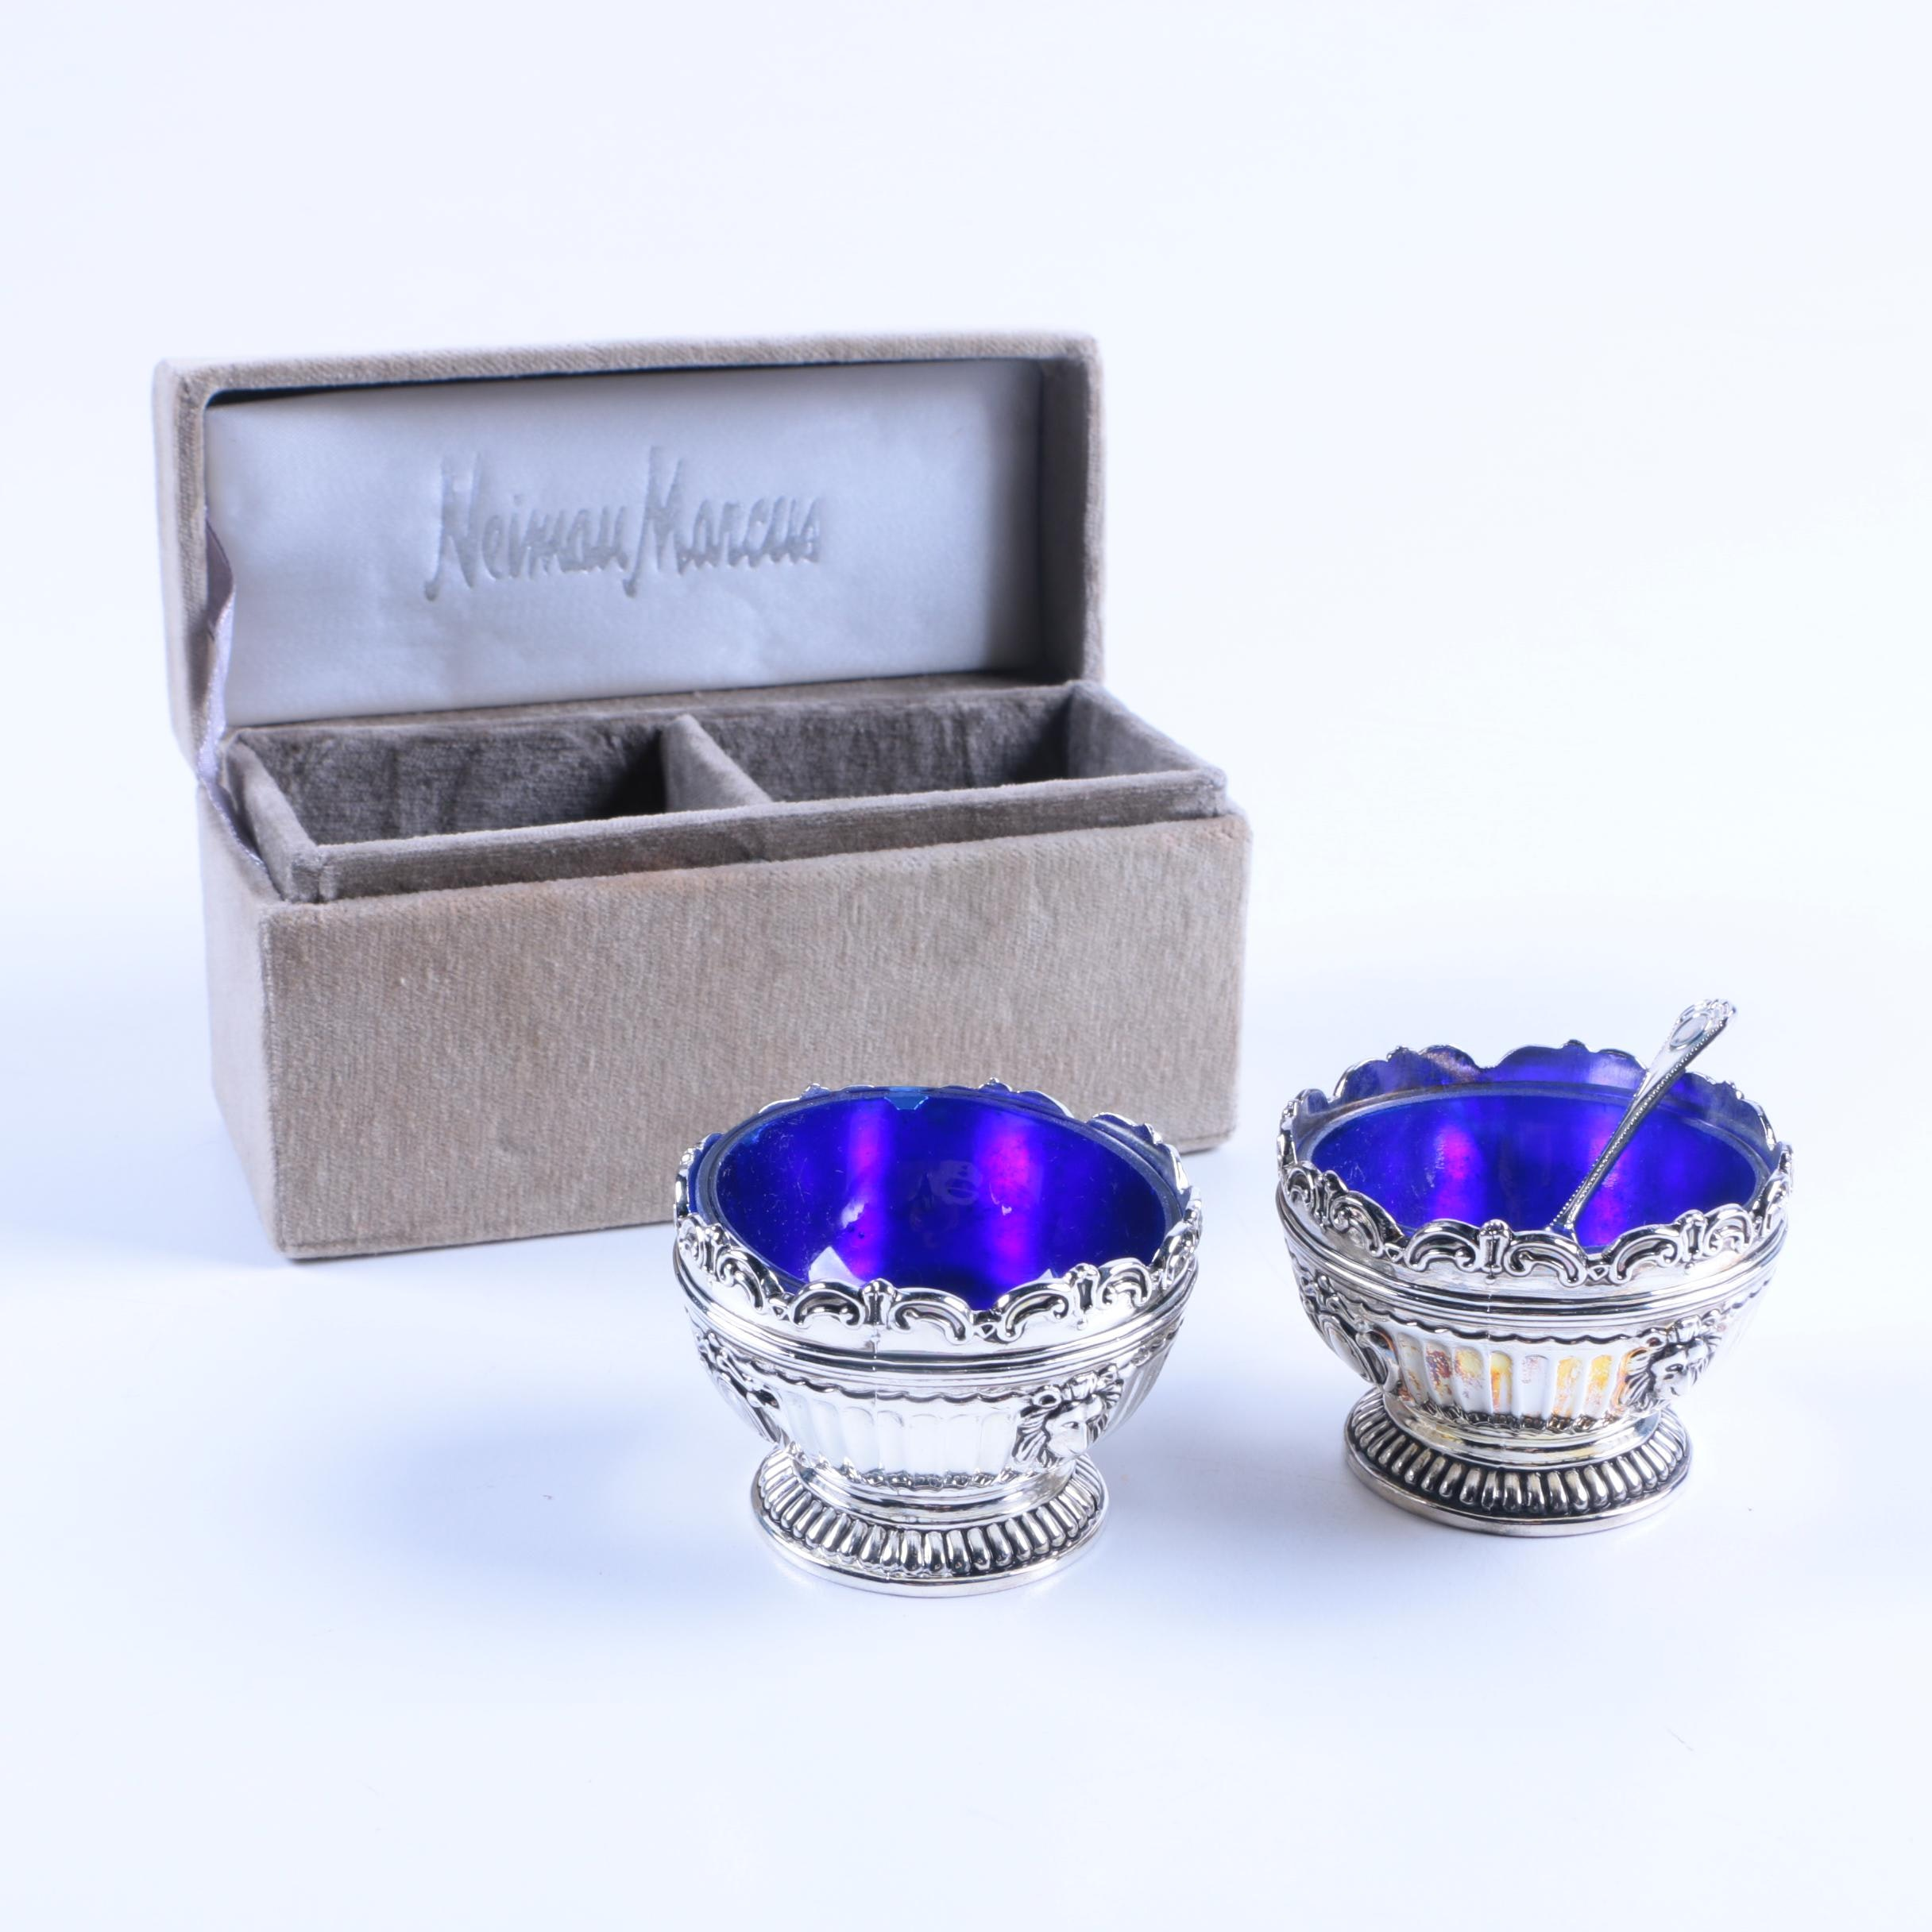 Godinger Silver-Plated Salt Cellars with Blue Glass Inserts